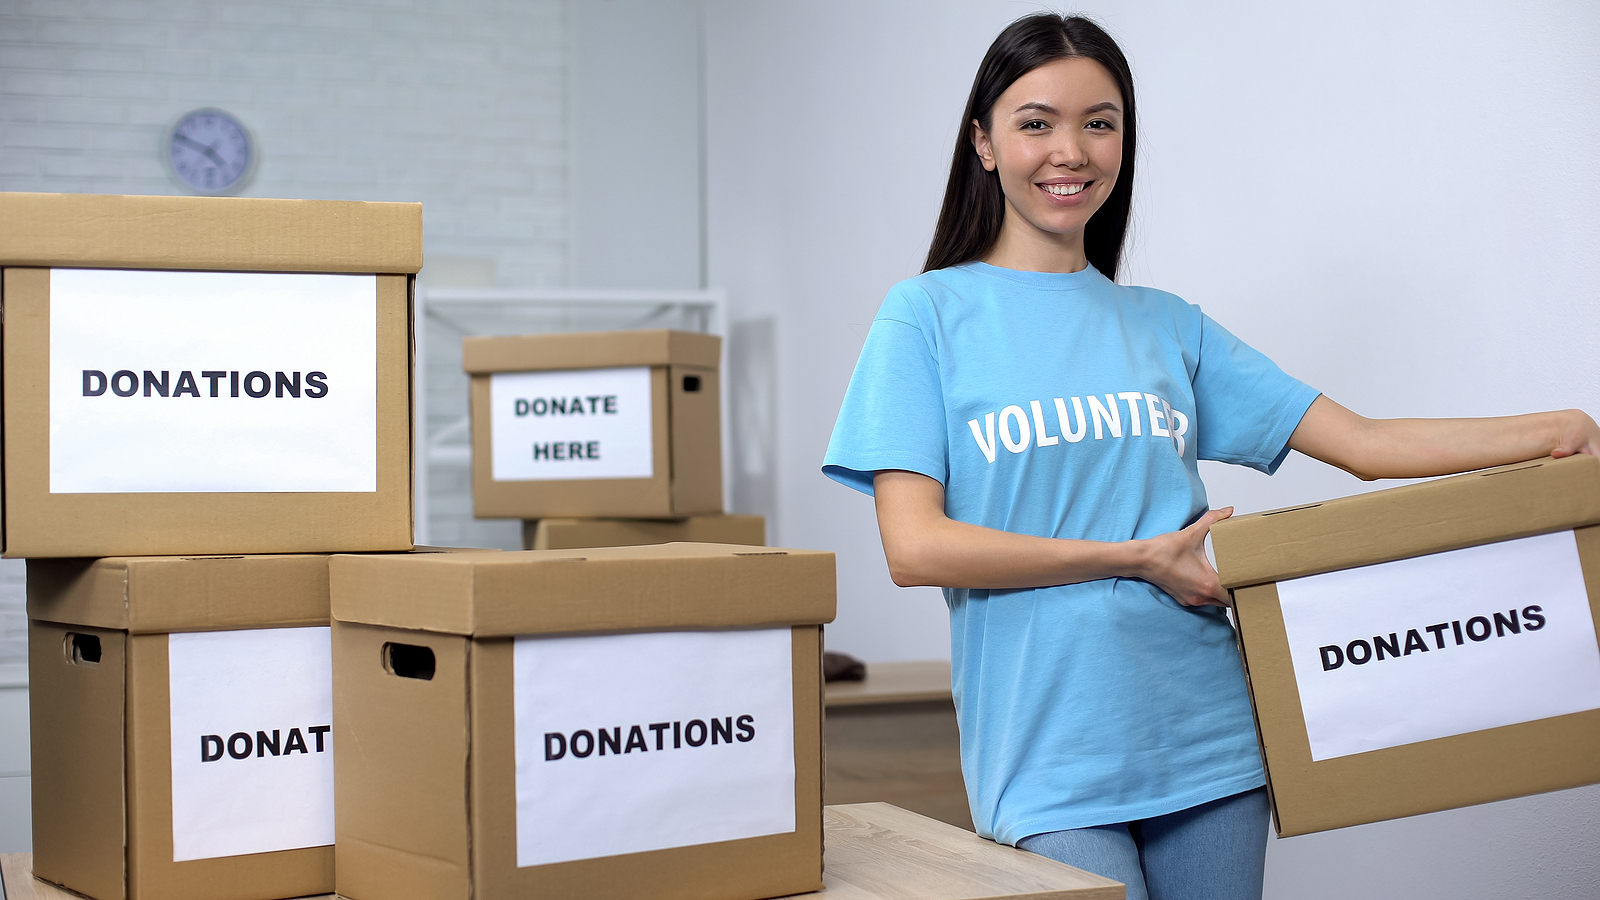 5 Ways to Get Your Small Business Active in Philanthropy